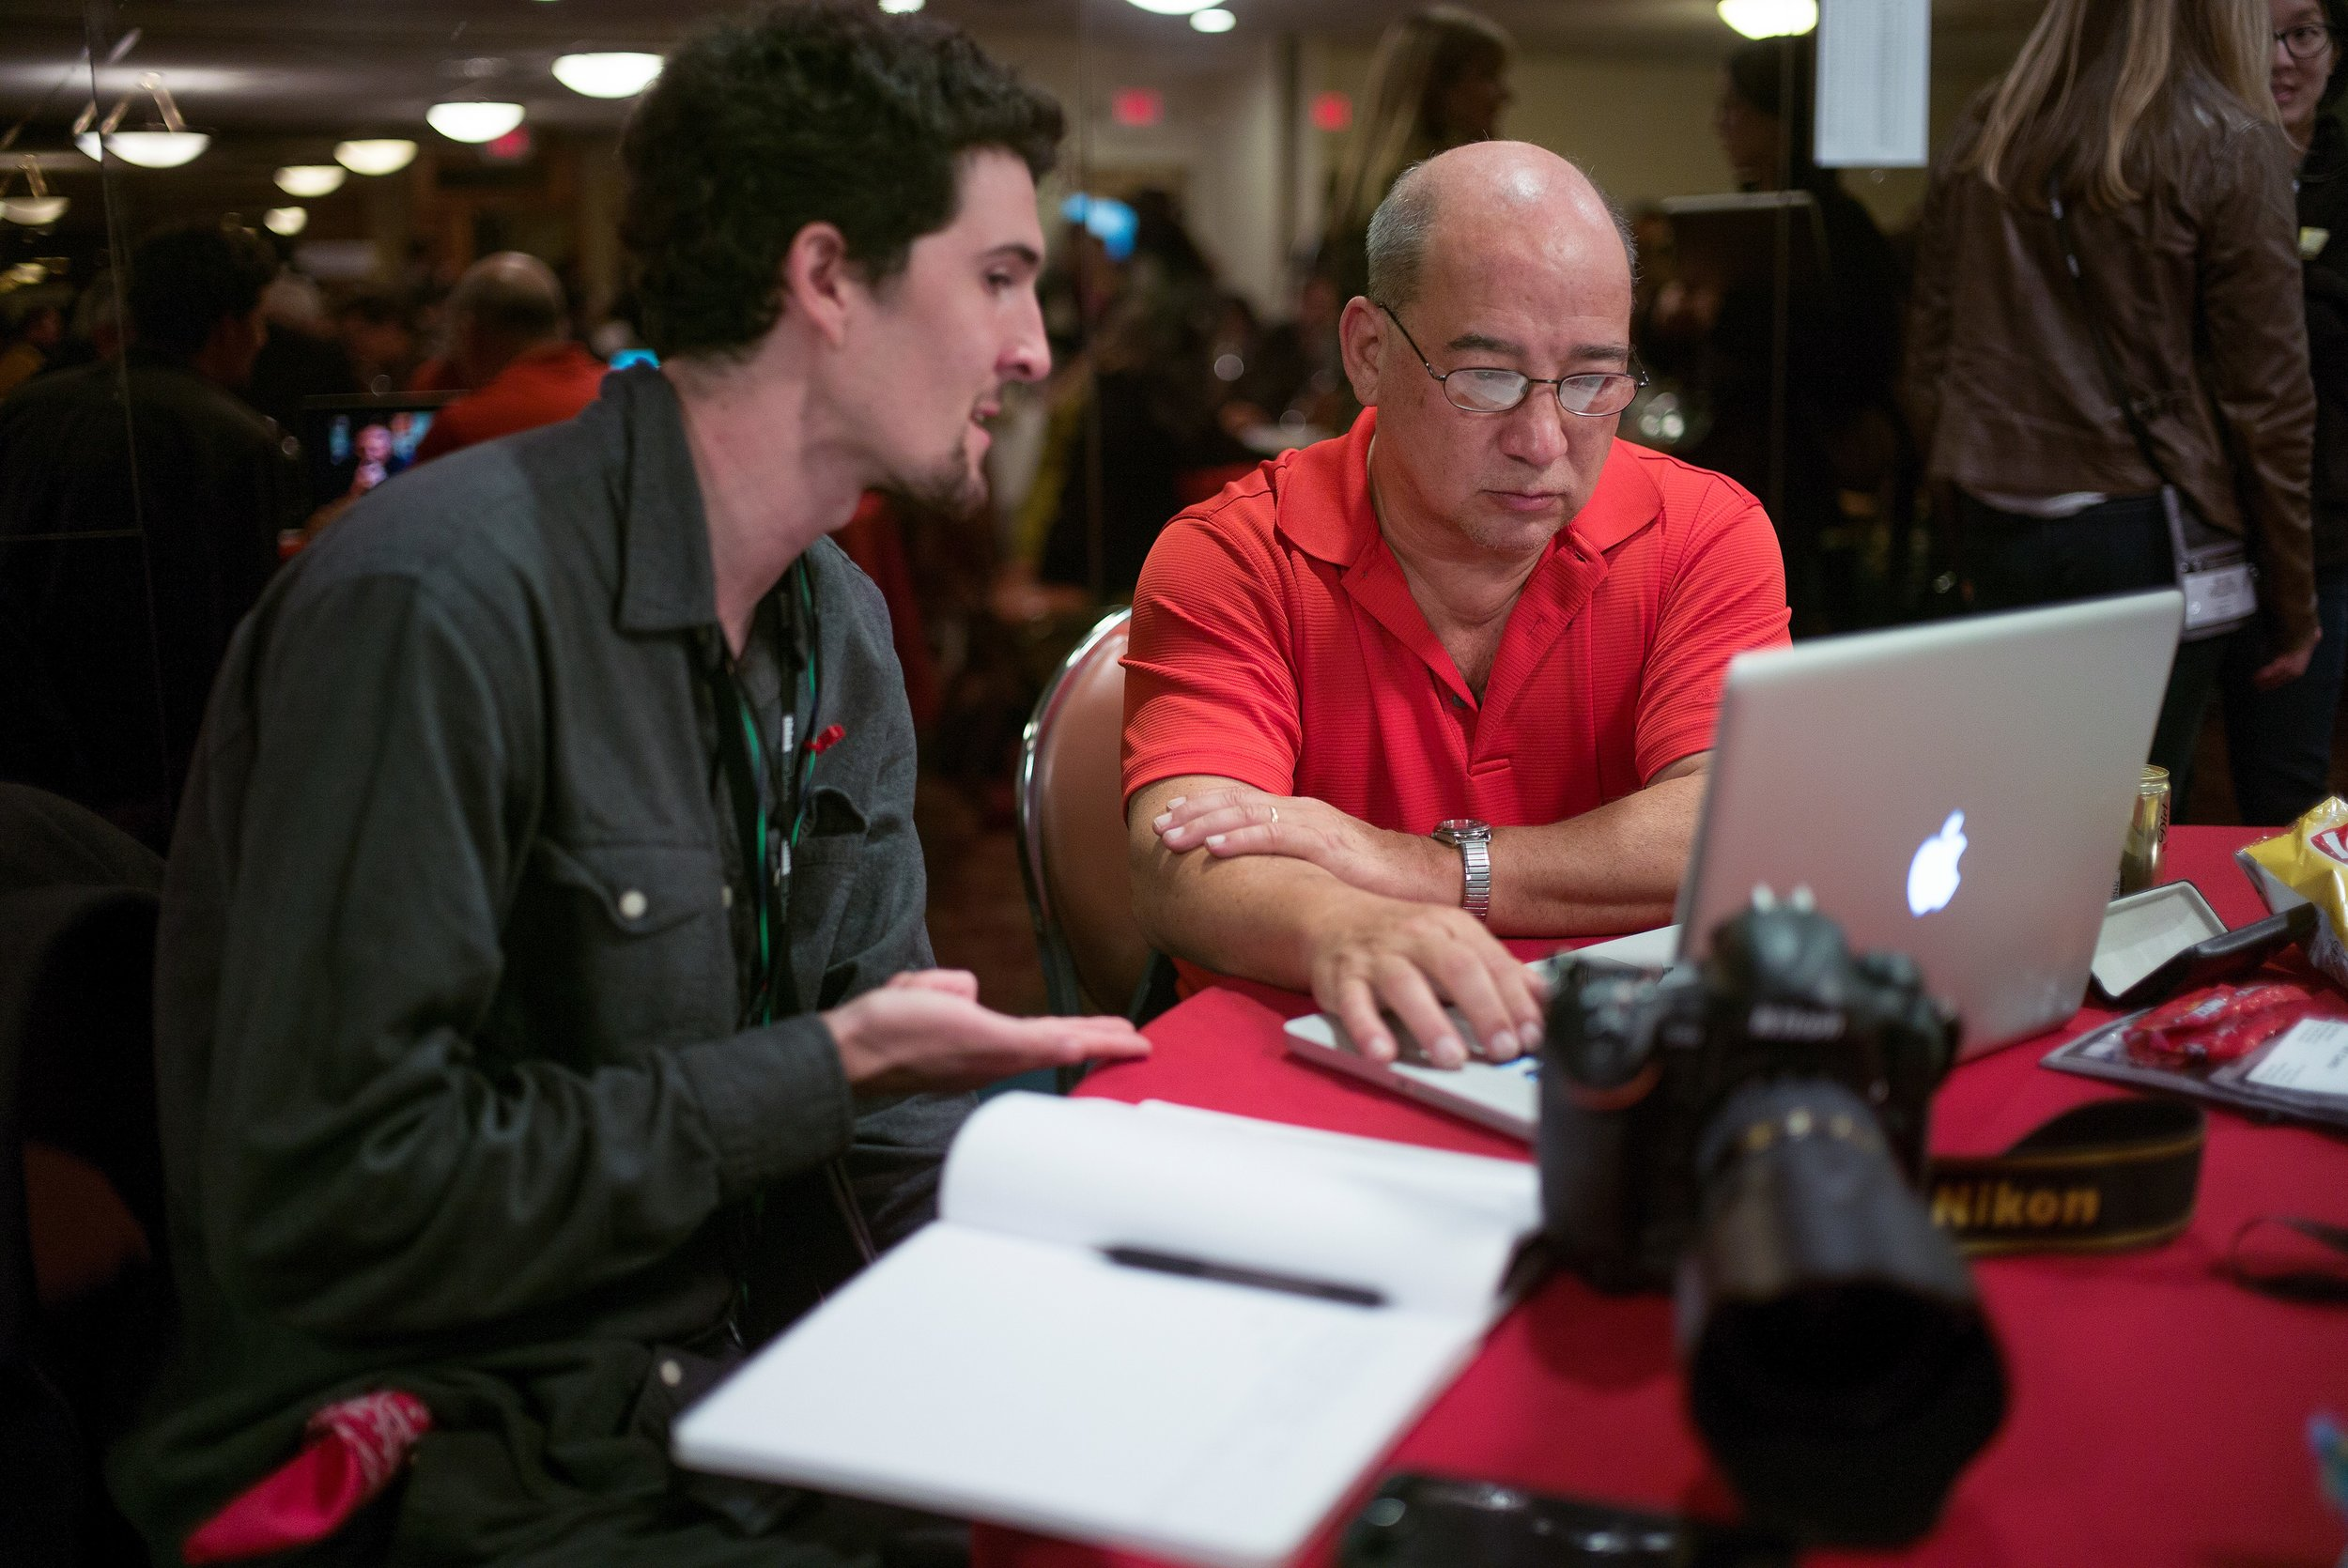 Photo editor Jim Colton (right) during portfolio reviews at the Eddie Adams Workshop. Credit: Robert Caplin